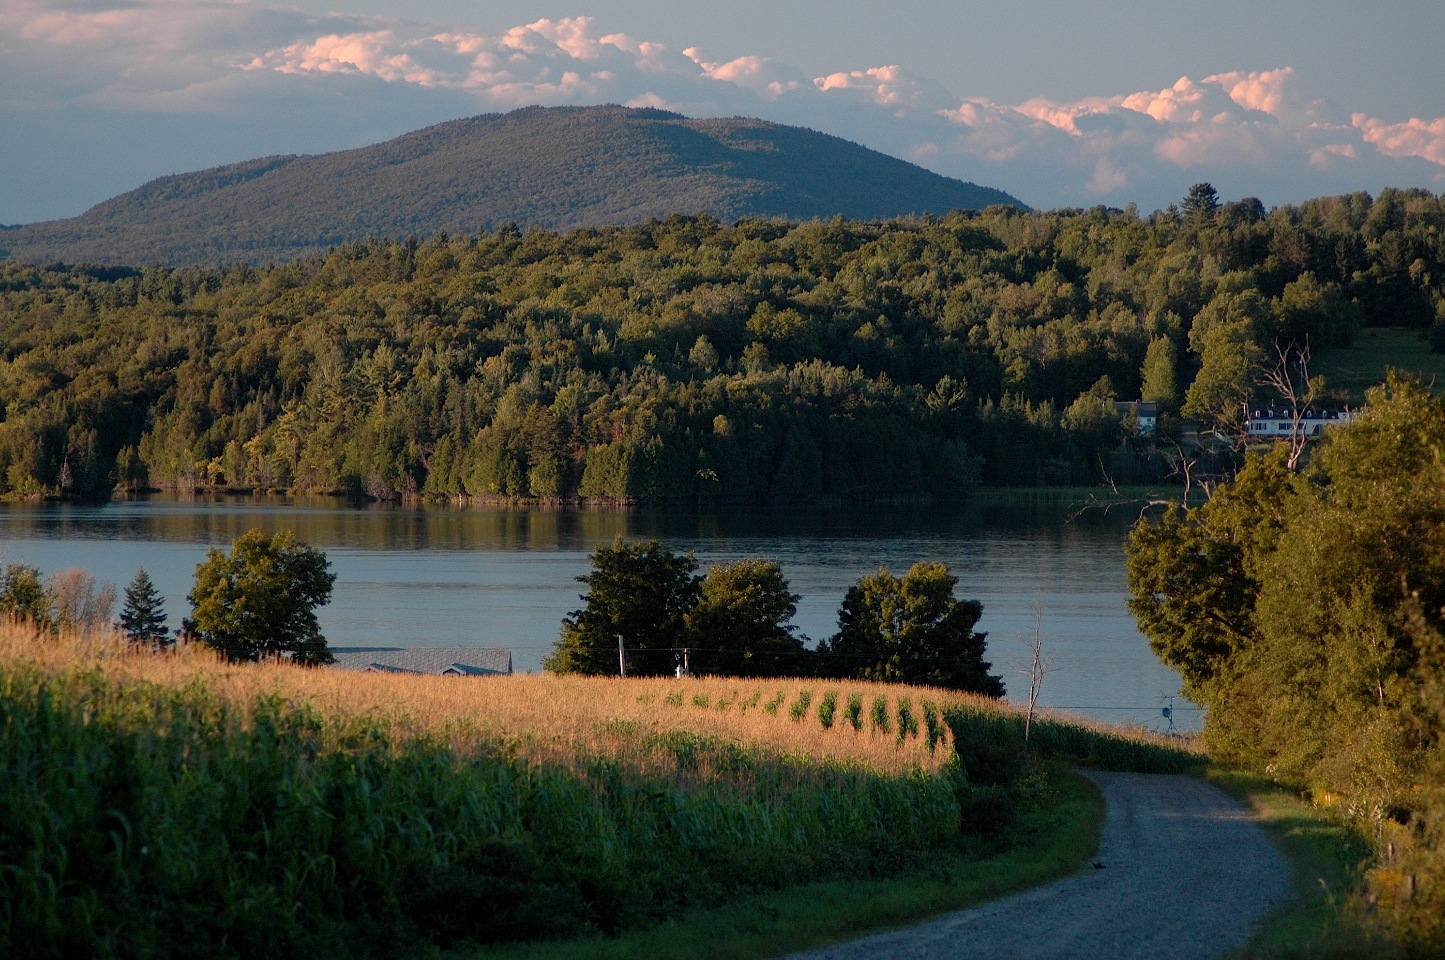 Crops, Water, Forest, Mountain  by Steve Wright